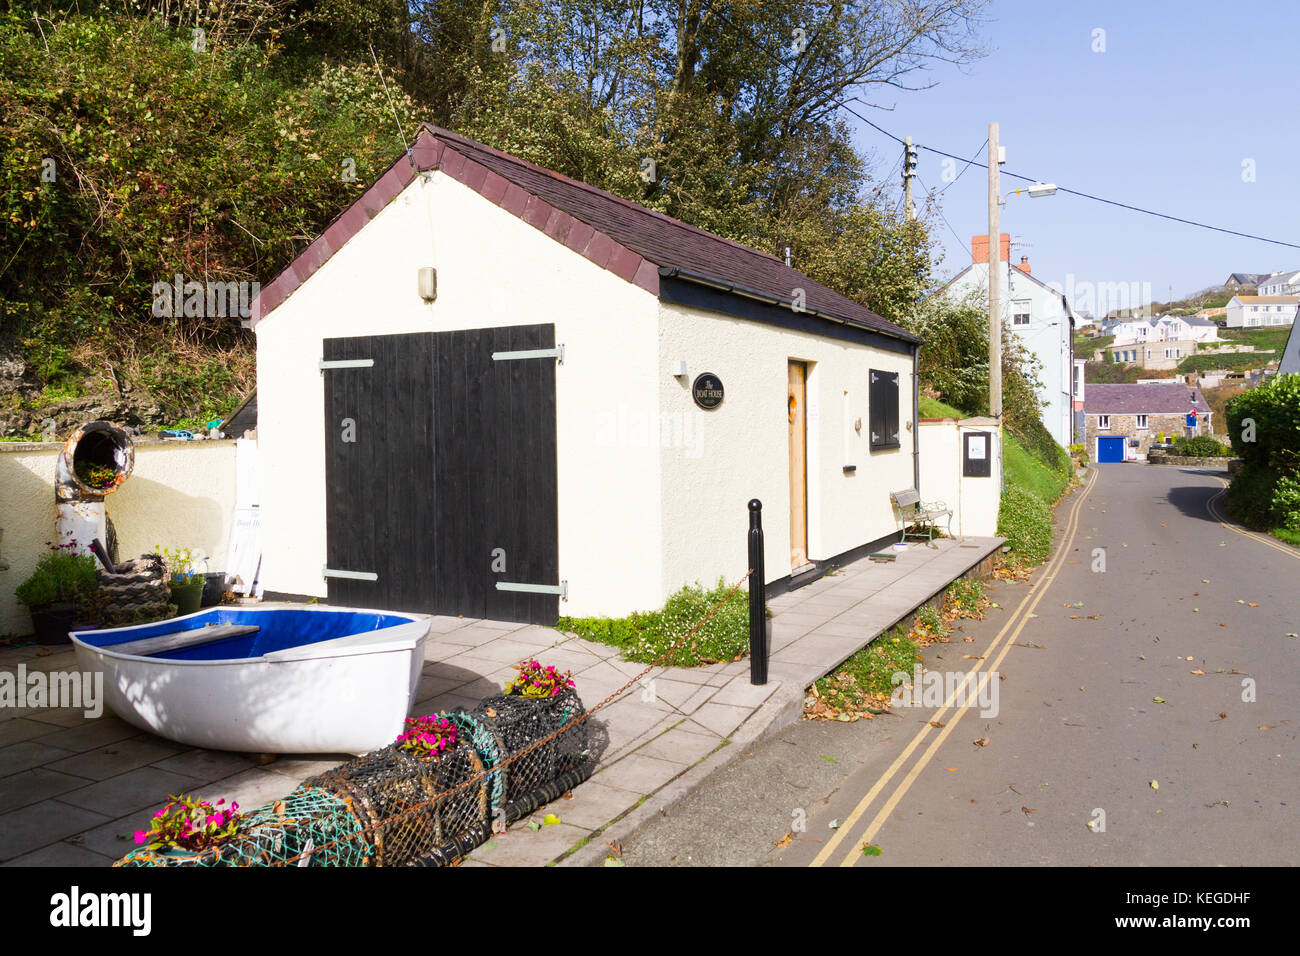 The Boat House Gallery in Little Haven, Pembroke Wales - Stock Image